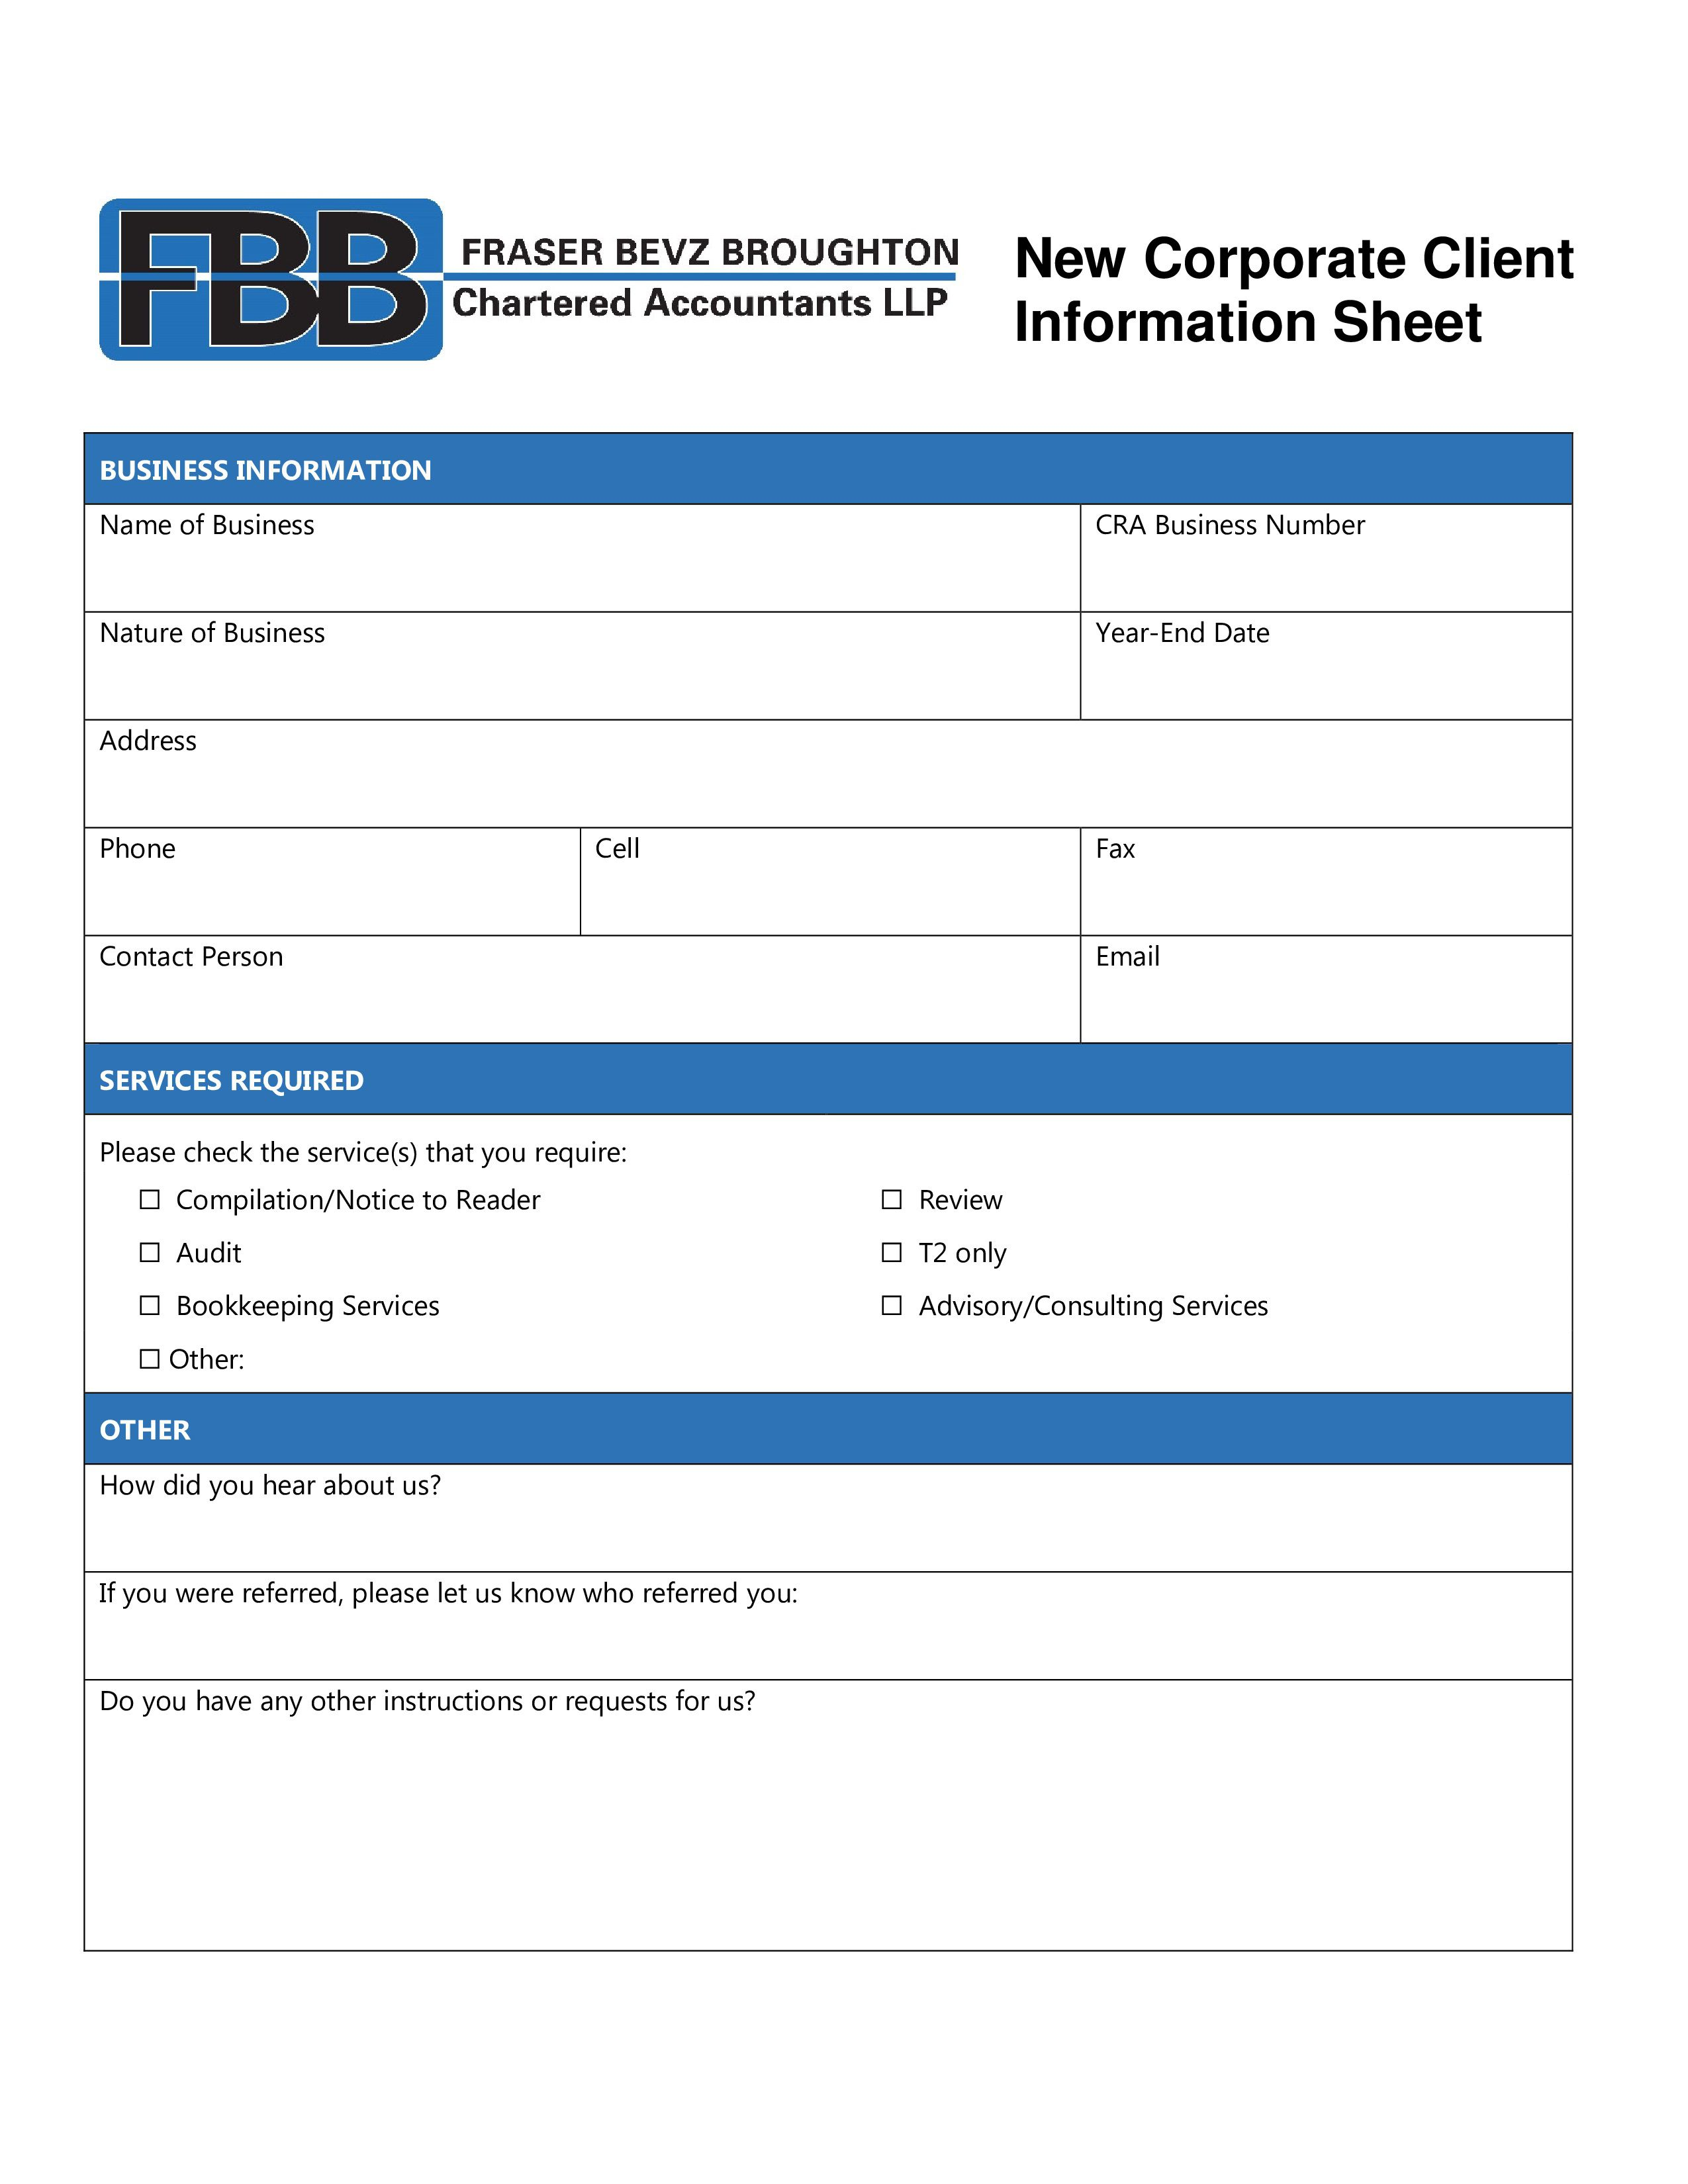 001 Staggering Customer Information Sheet Template Image  New Info Excel SpreadsheetFull